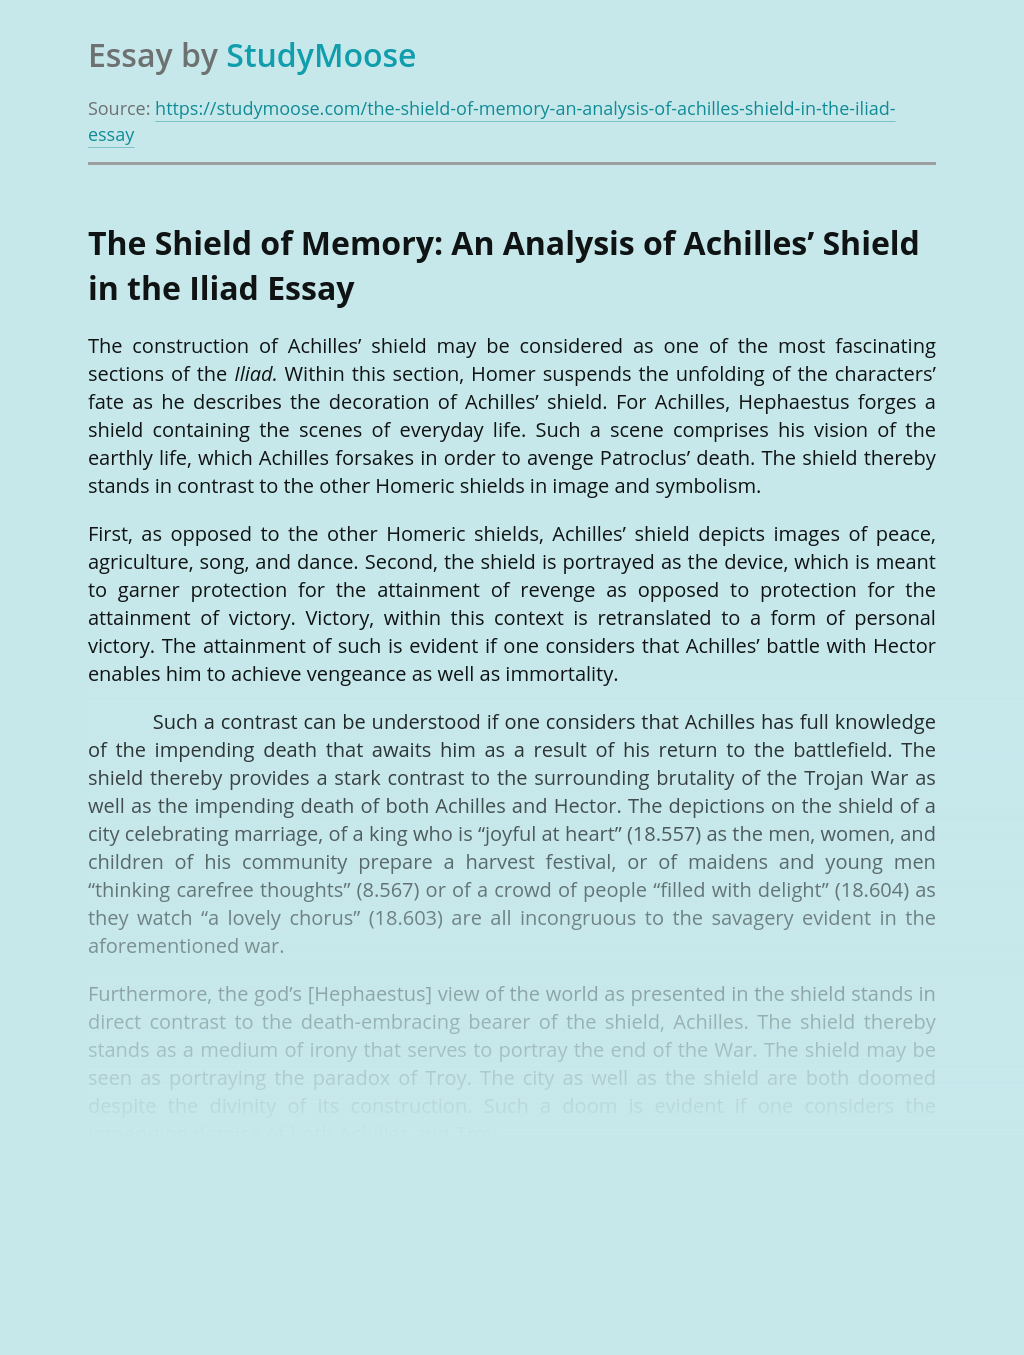 The Shield of Memory: An Analysis of Achilles' Shield in the Iliad